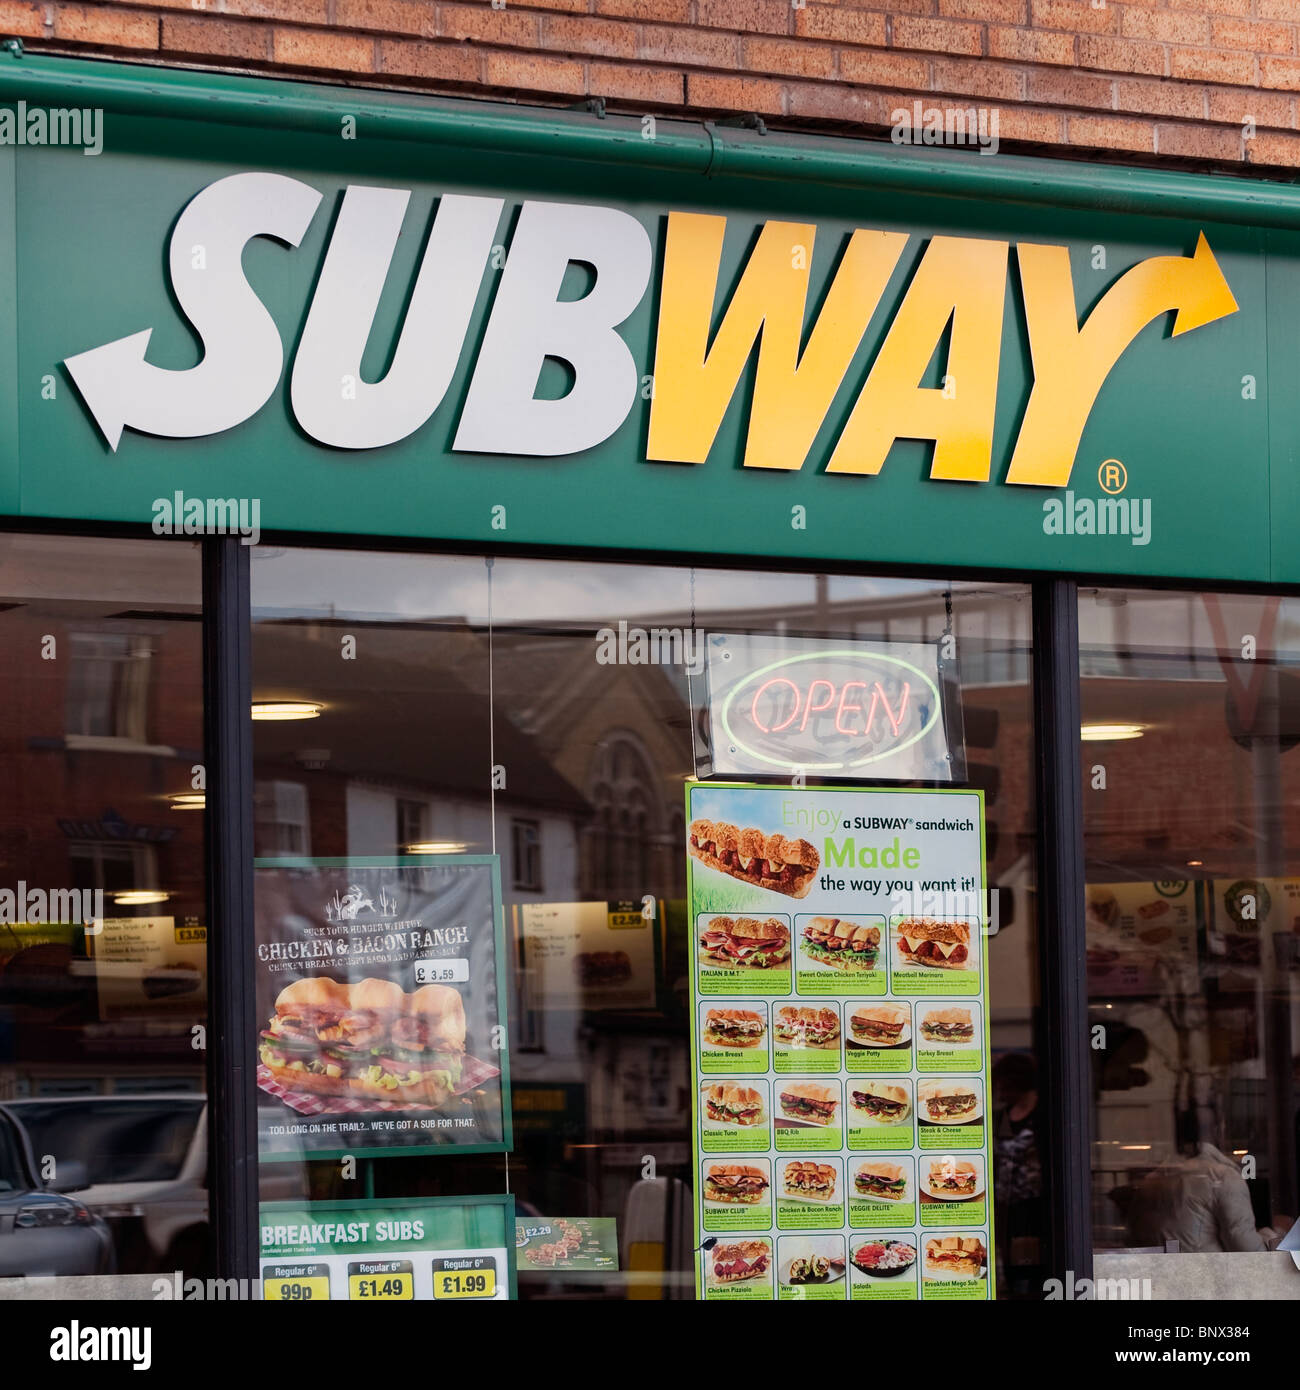 Subway restaurant in Hereford City, UK. Subway sandwich shop. - Stock Image